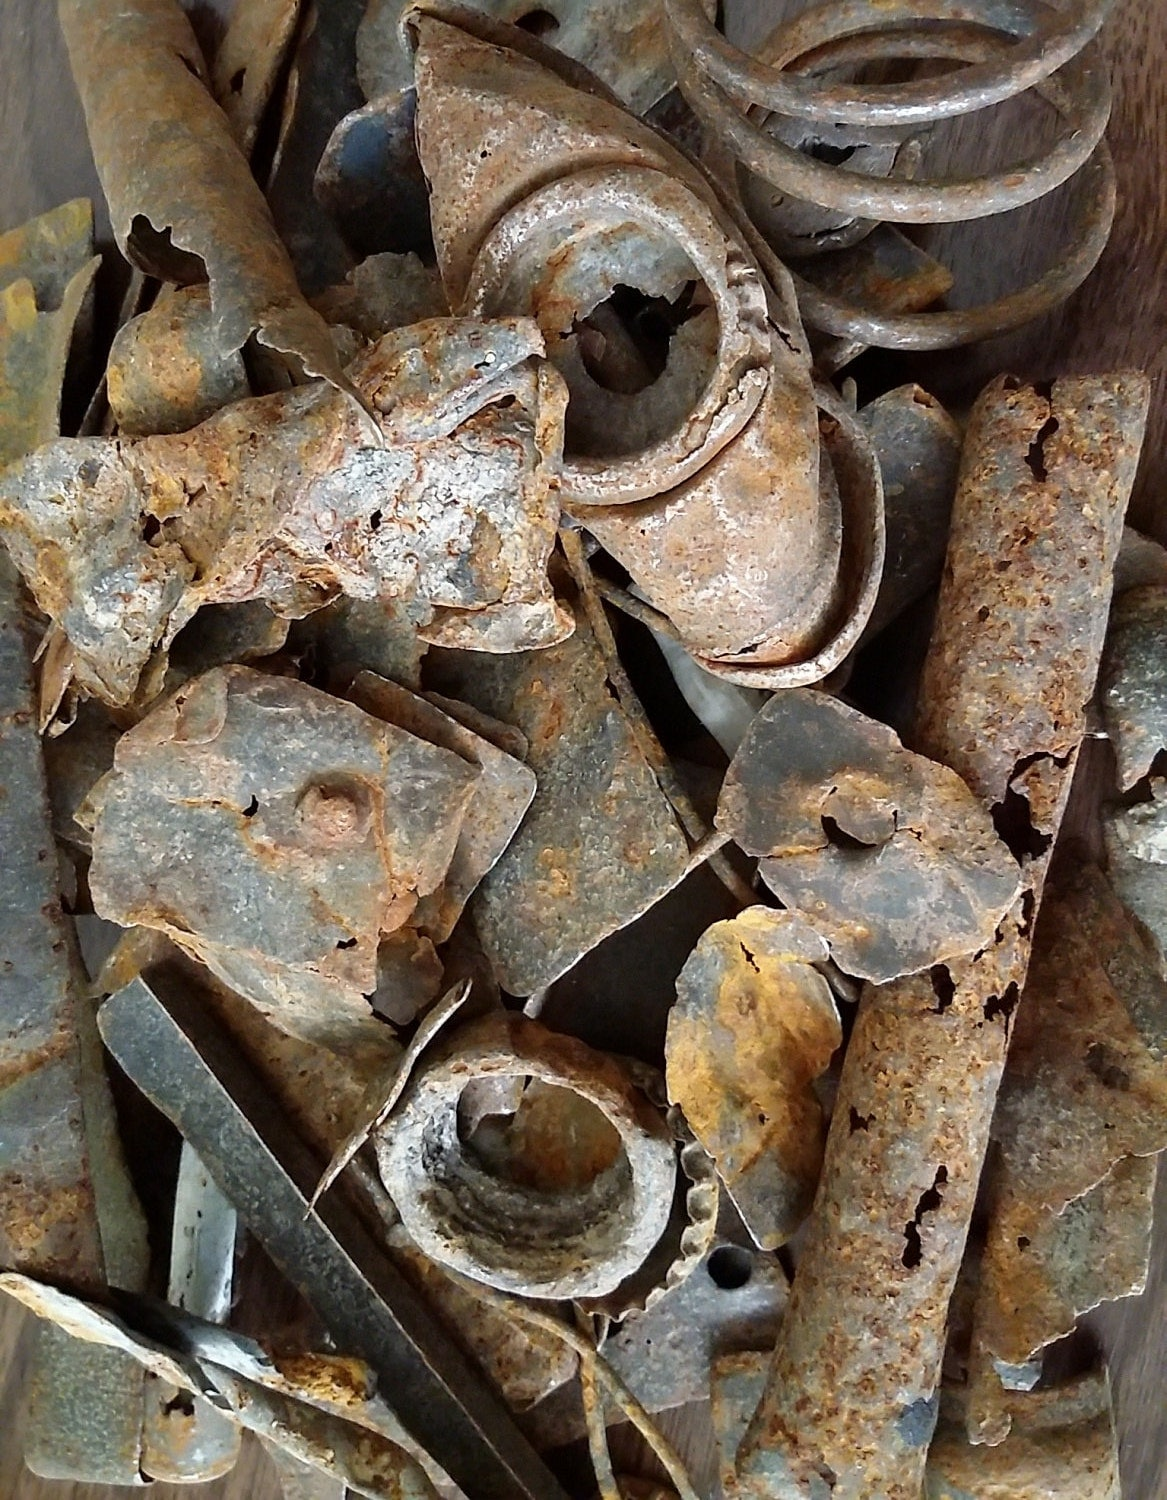 HUGE Lot of Rusty Metal Objects 1.44 lb by GreatCanadianLakes